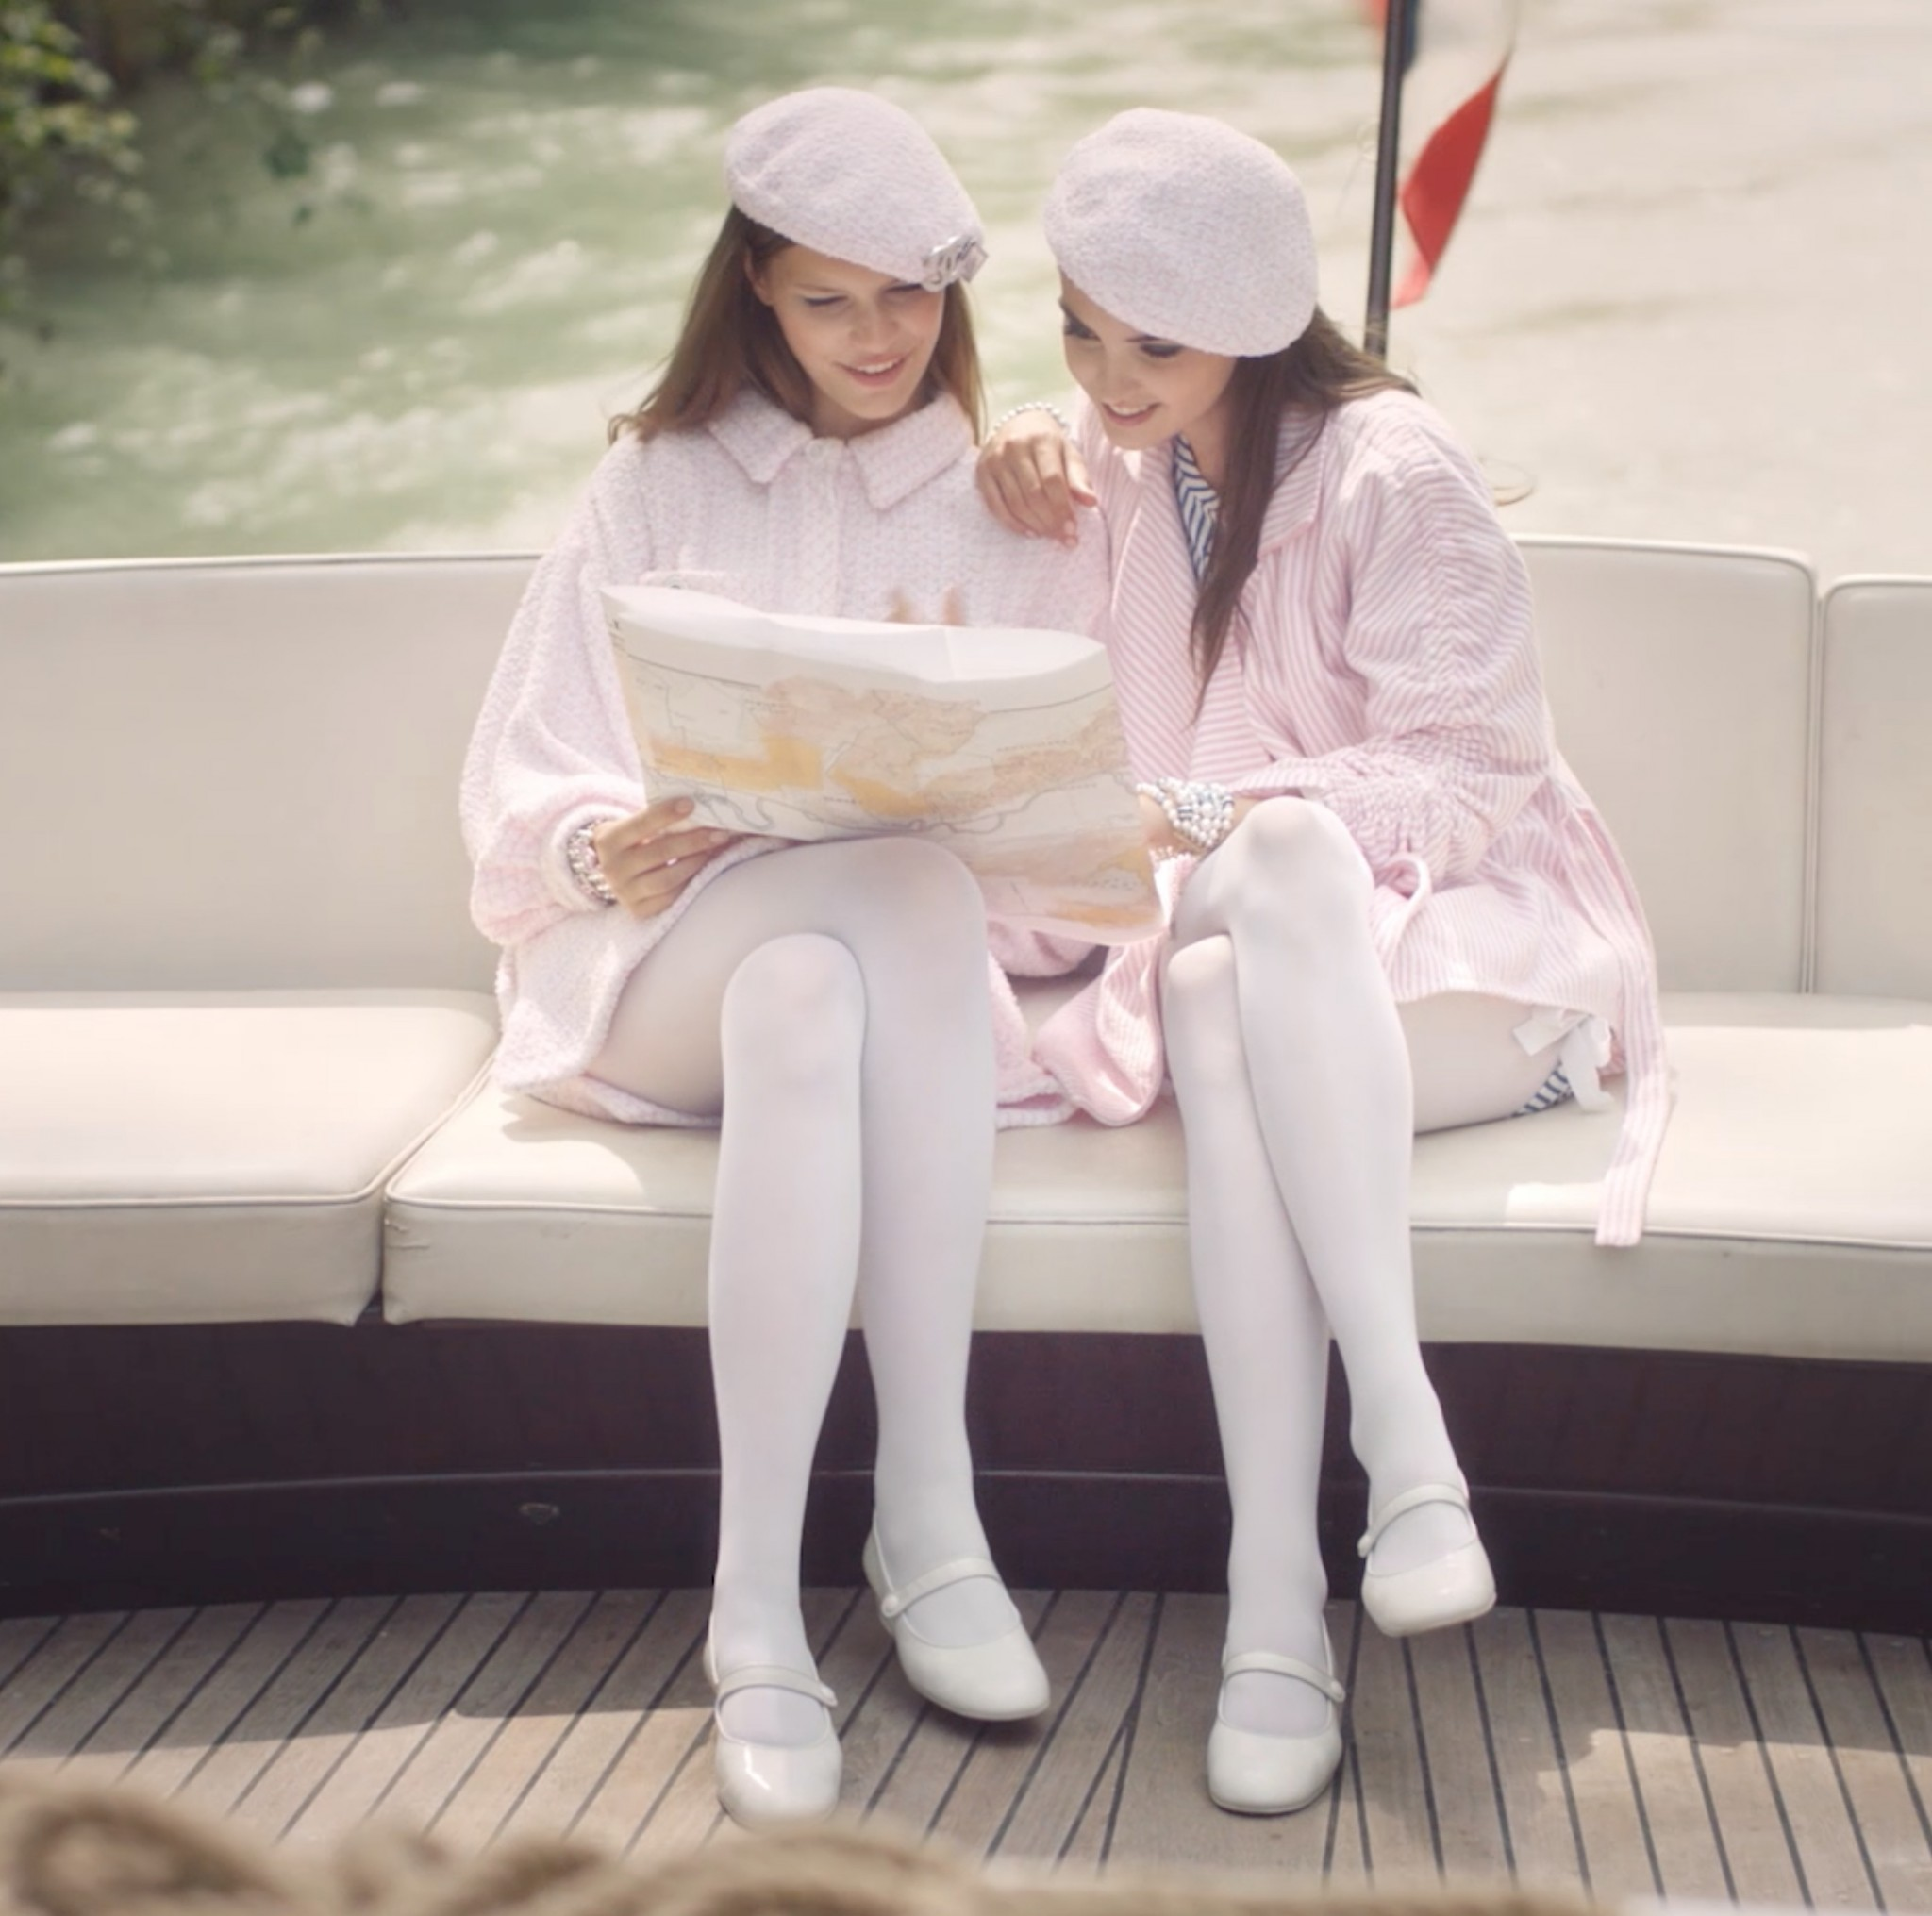 Chanel Has Redefined This Childrenswear Classic